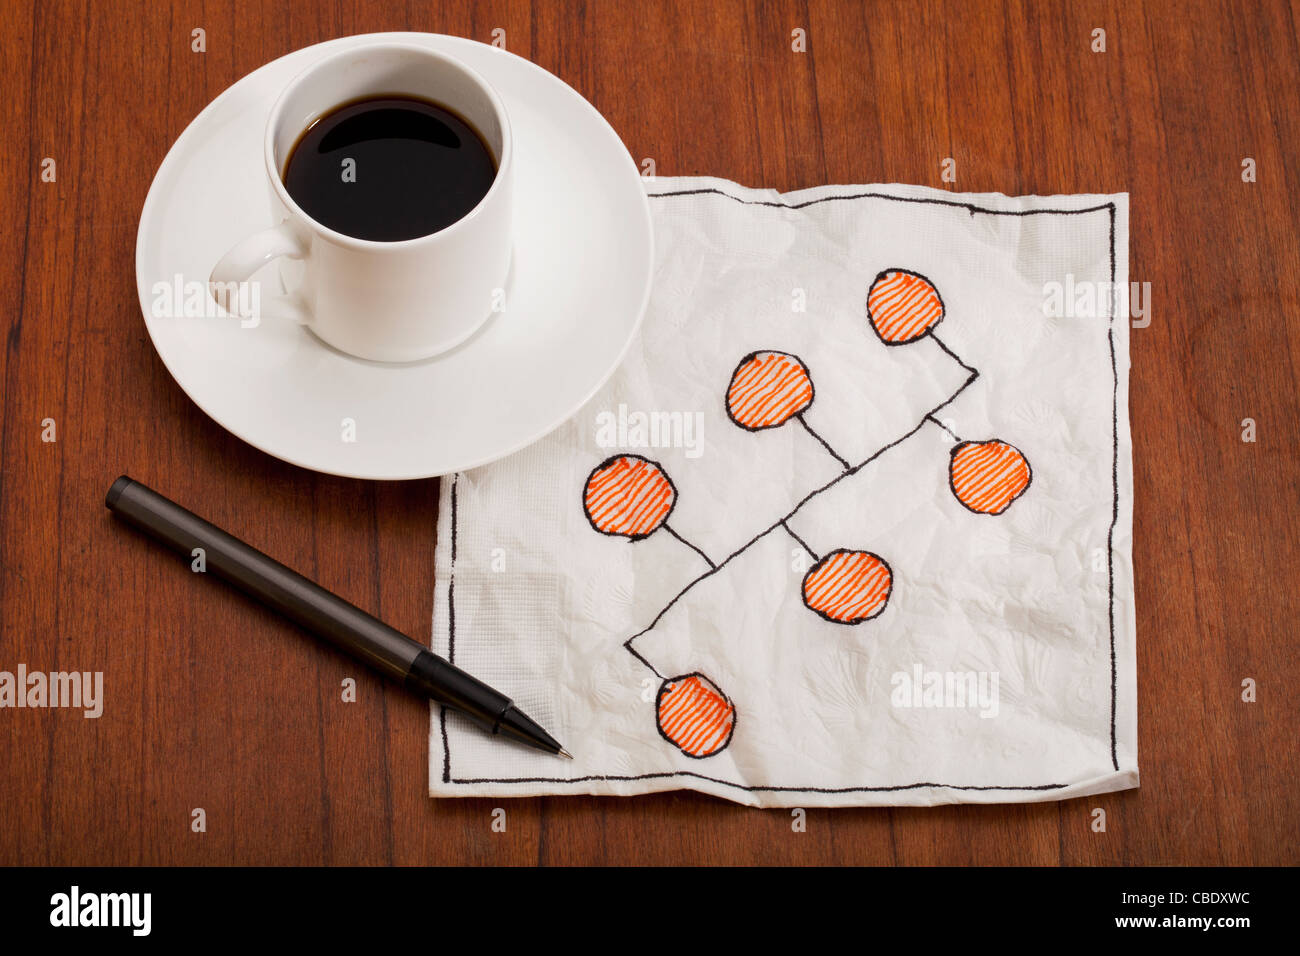 bus or backbone network model - napkin doodle with espresso coffee cup on table - Stock Image